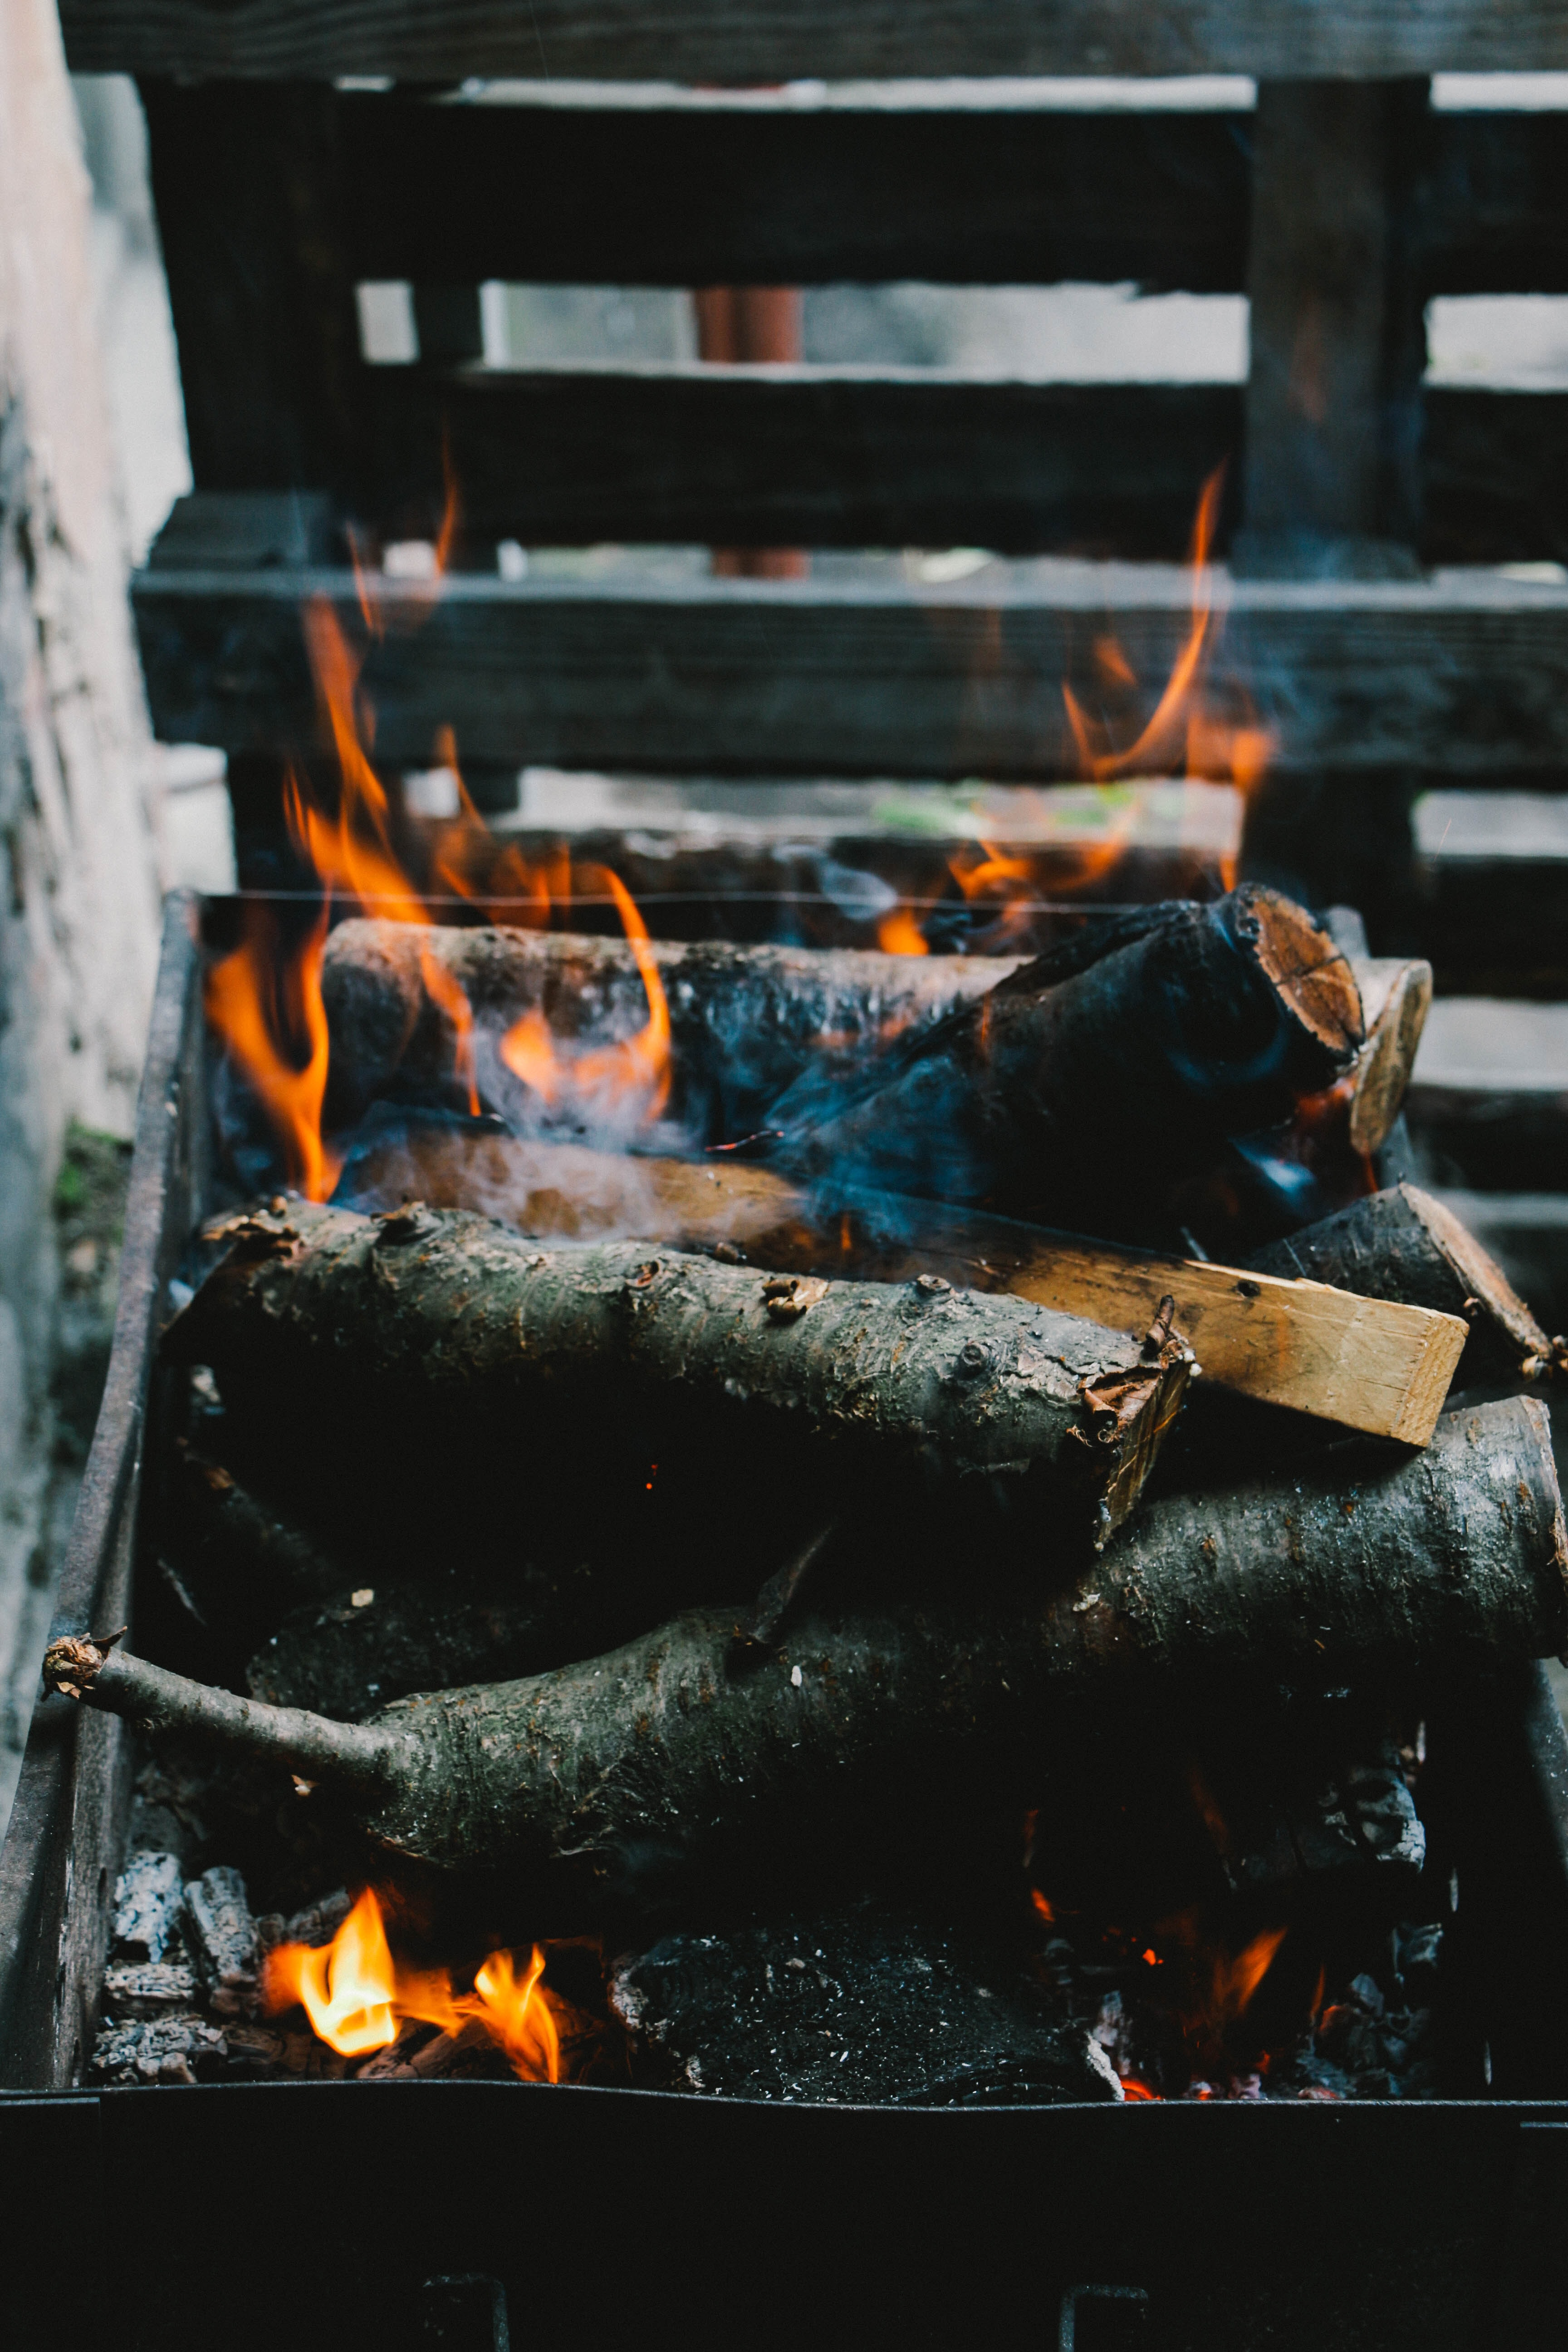 A pile of burning firewood in a brazier